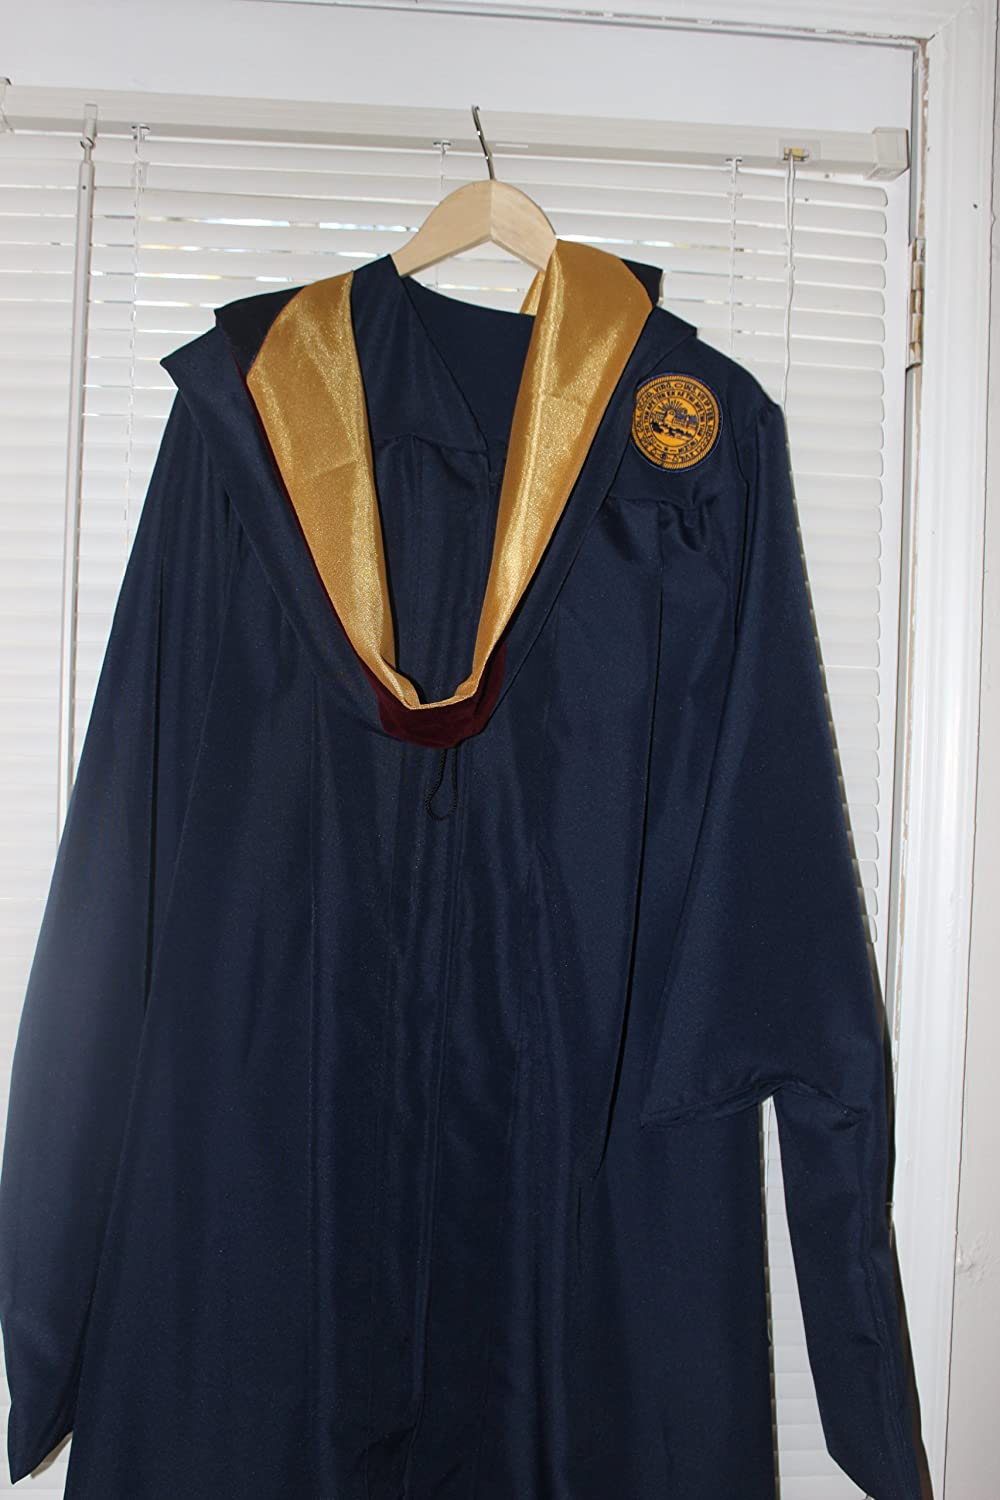 Amazon.com : Collegiate Graduation Cap and Gown : Cap And Gown For ...